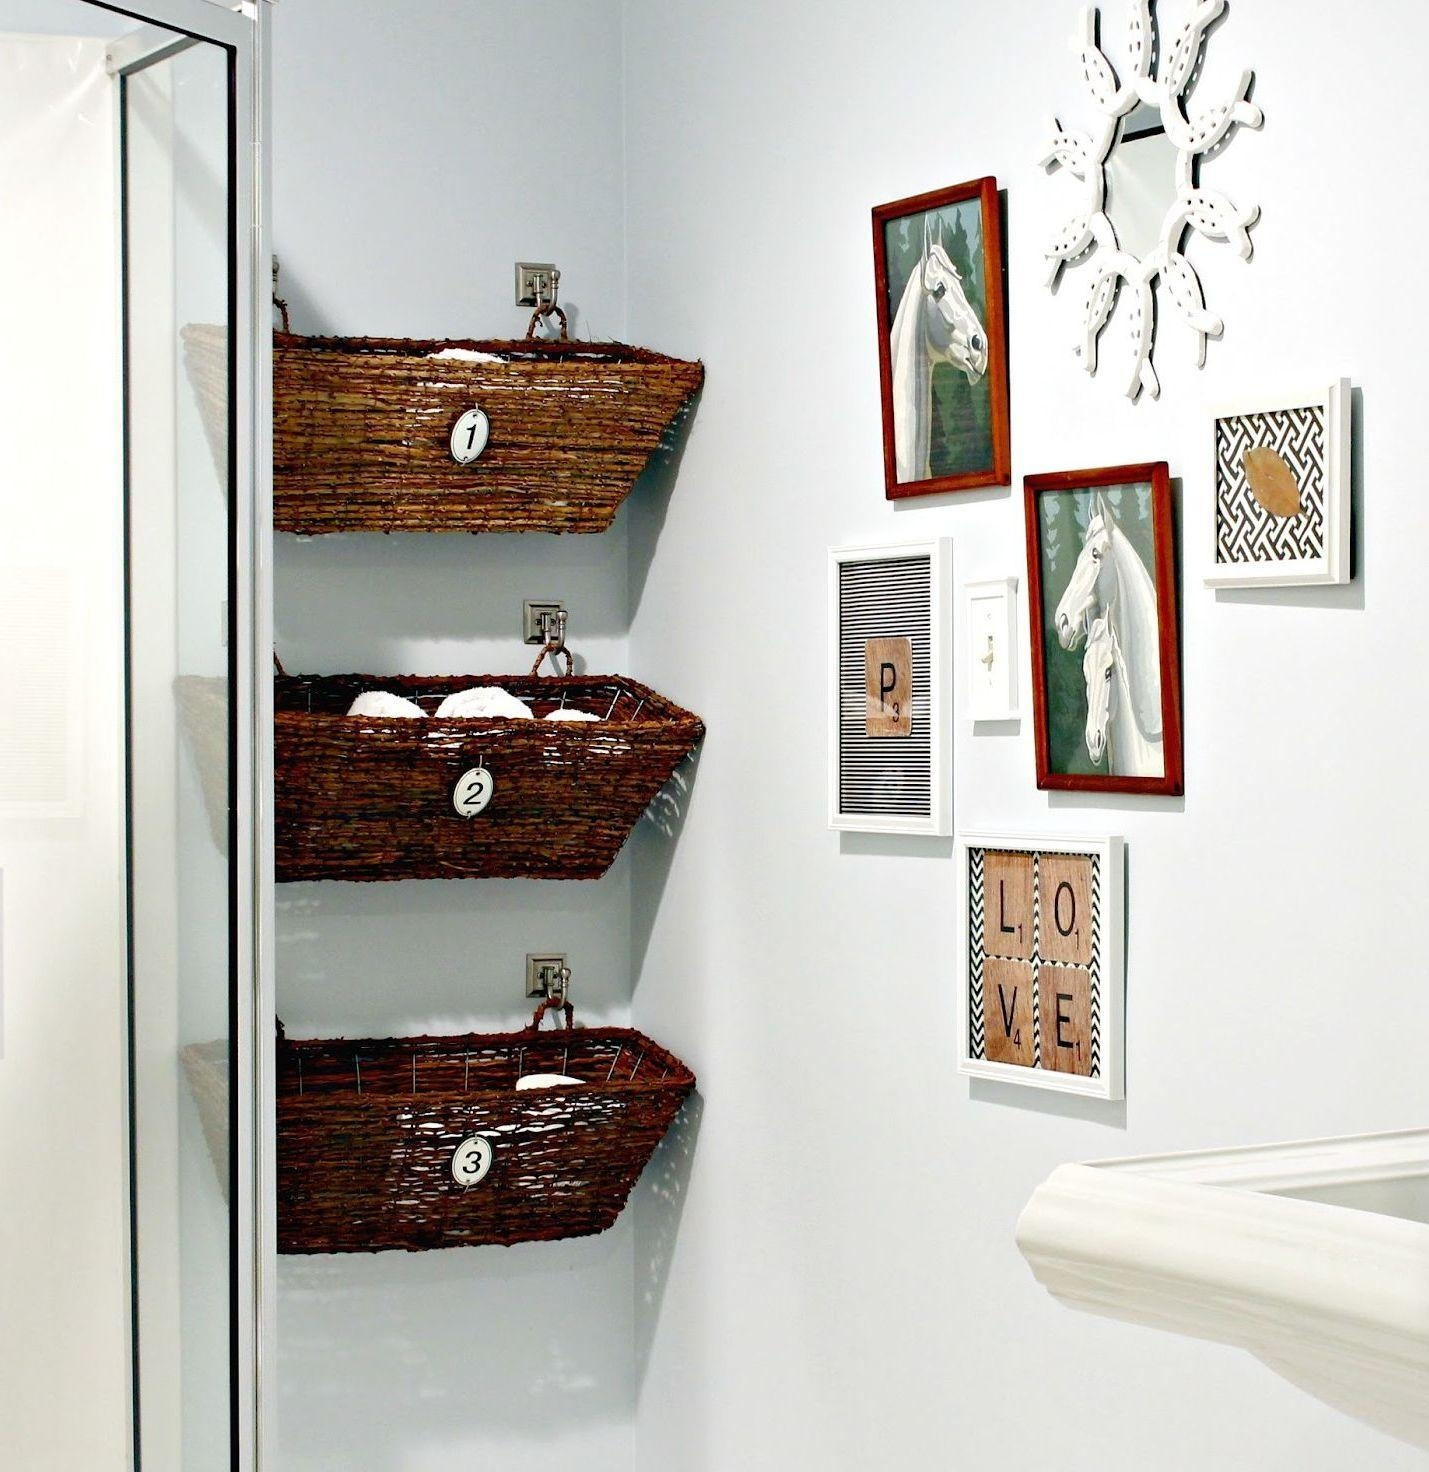 Bathroom Ideas: Small Framed Bathroom Wall Art Near Three Hanging Pertaining To Wall Art For The Bathroom (Image 3 of 20)